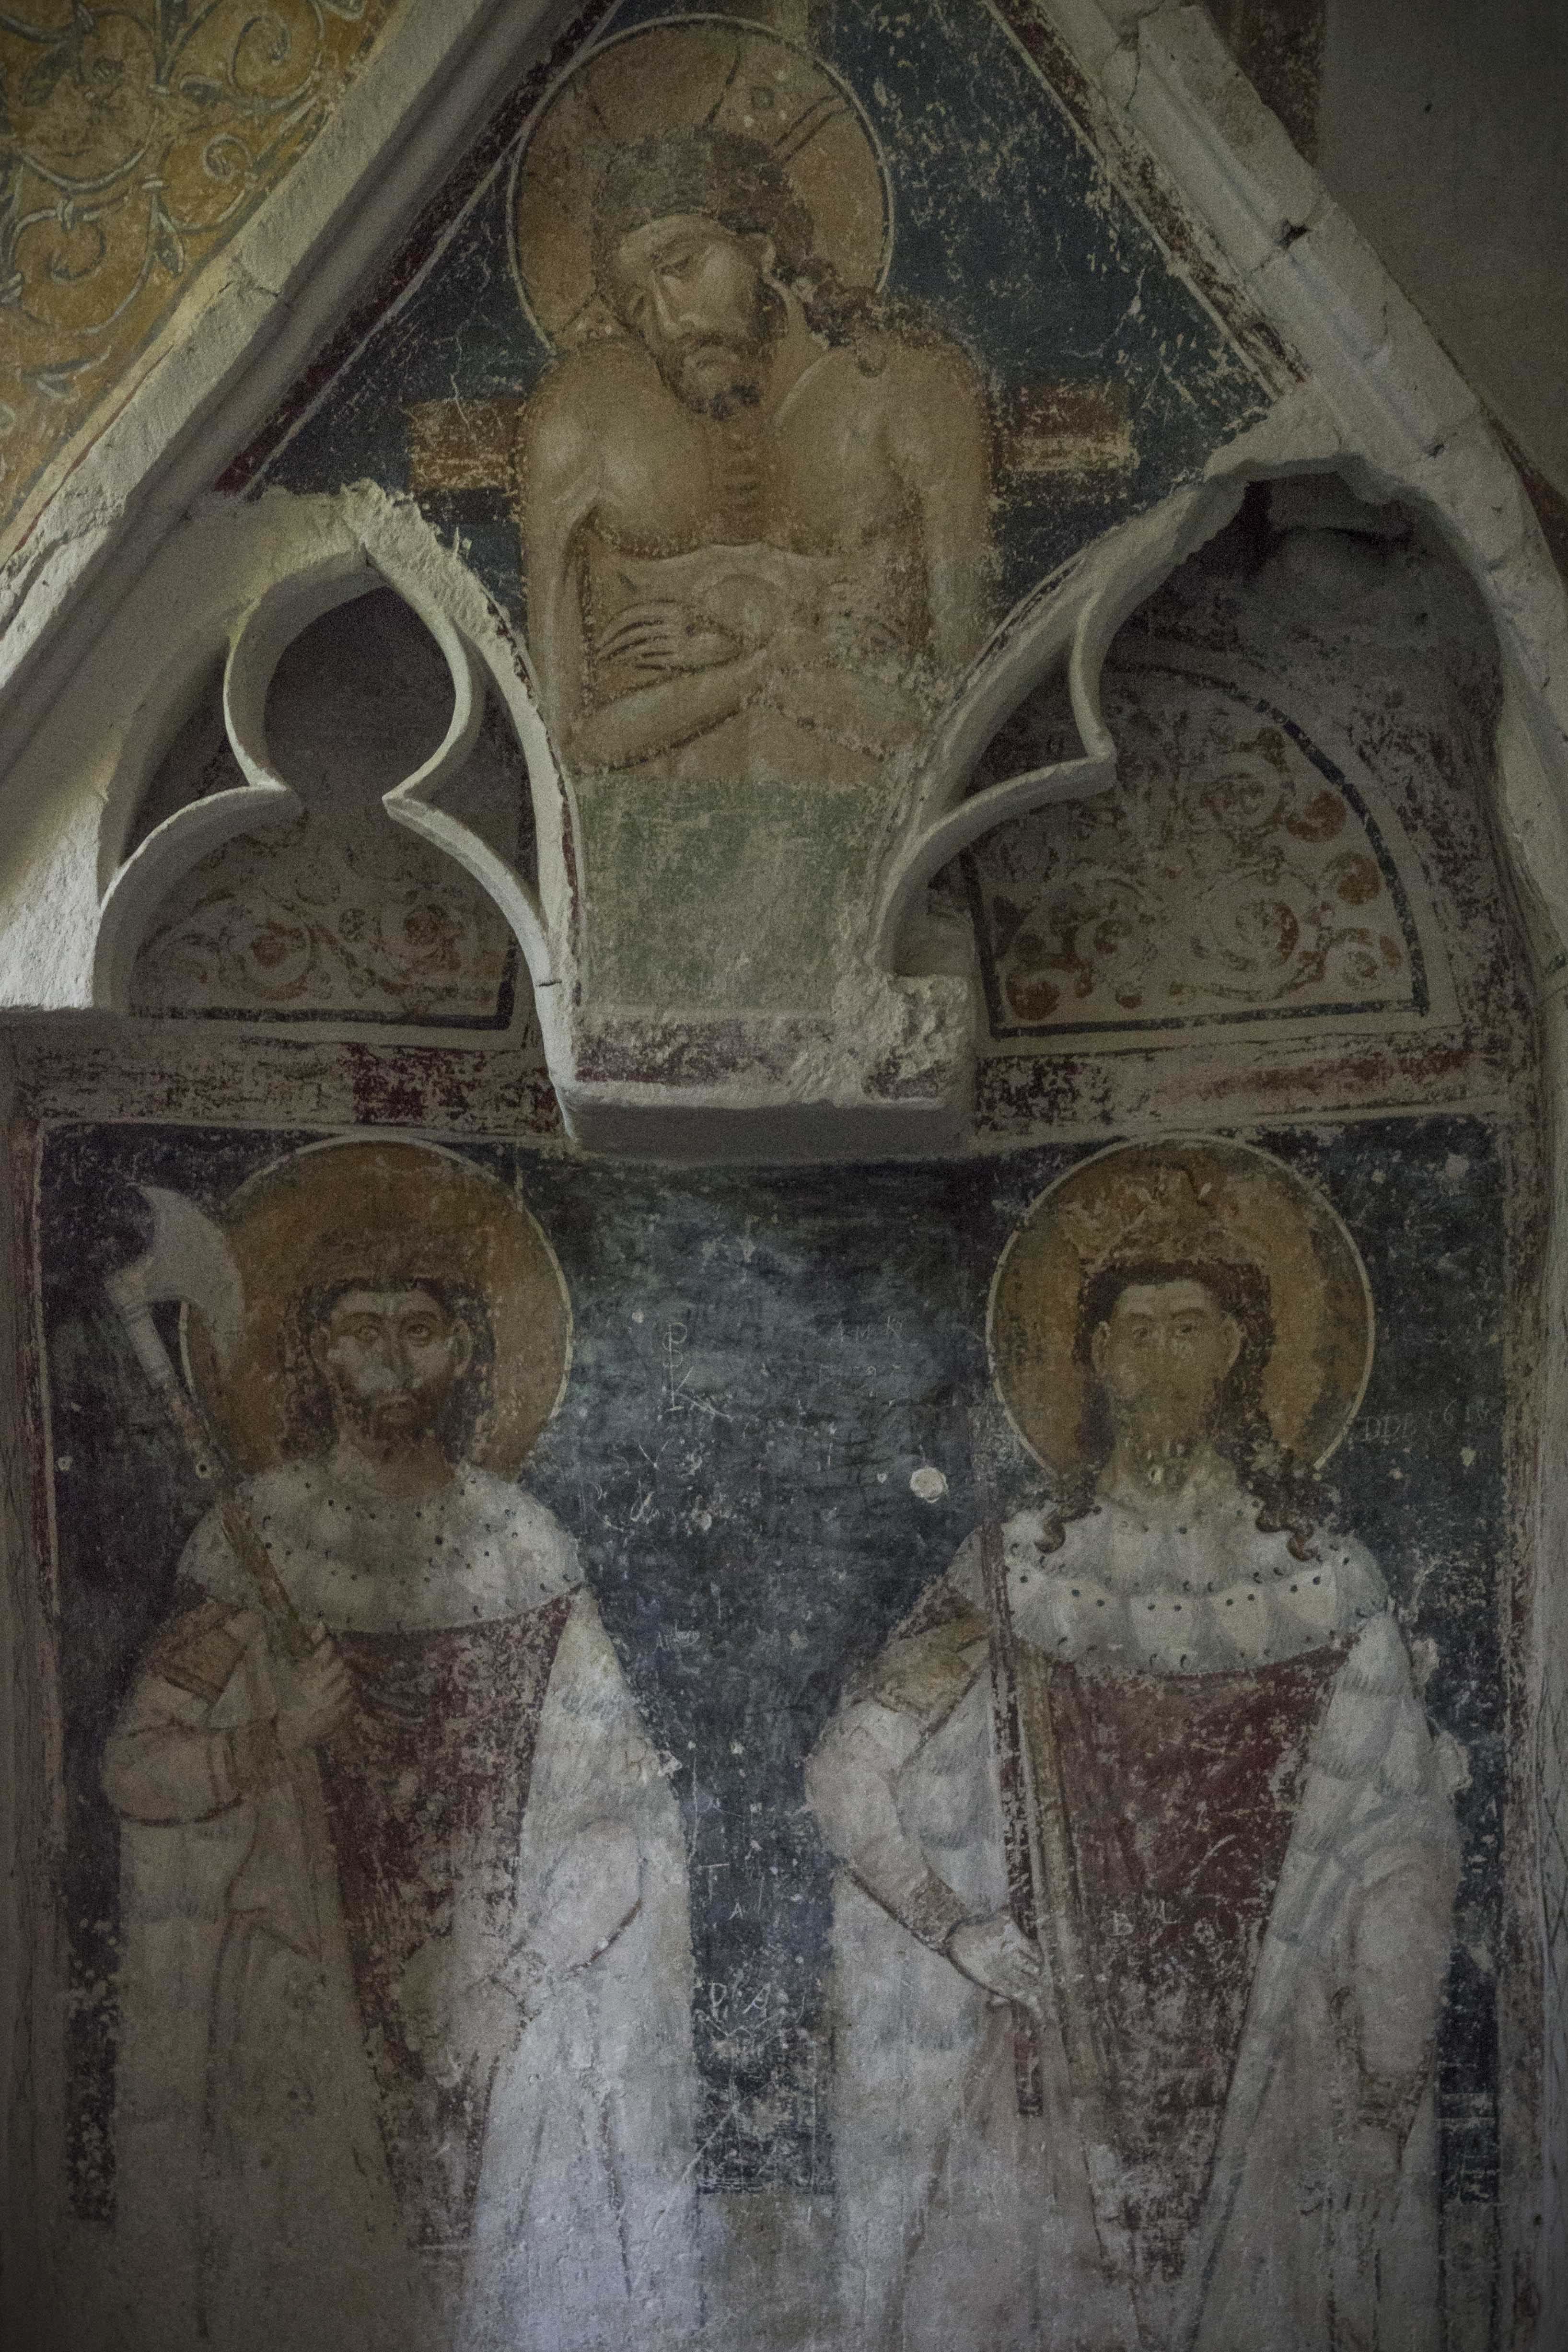 Mural with King Saint Stephen